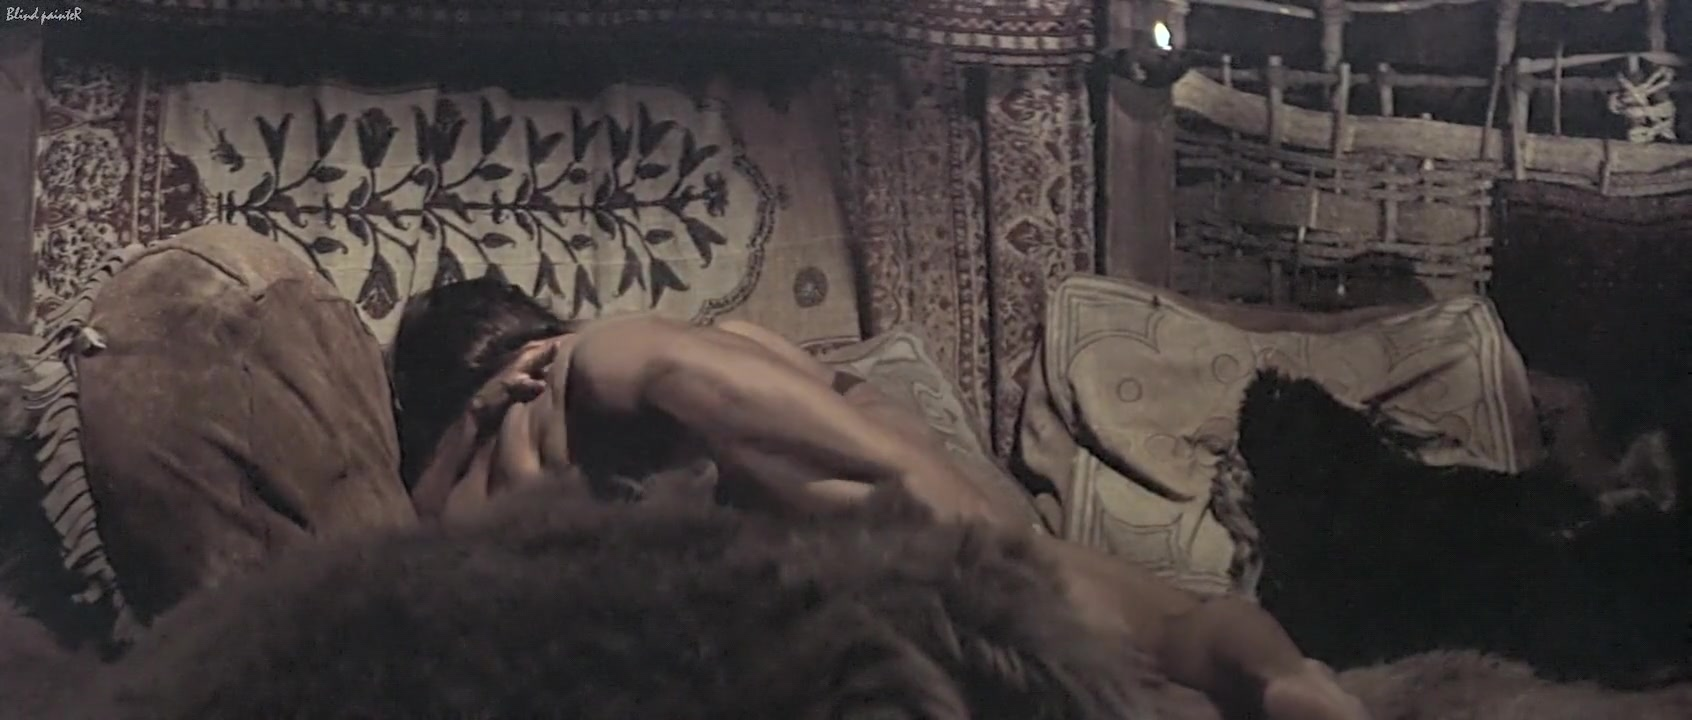 Conan the barbarian clip2 8